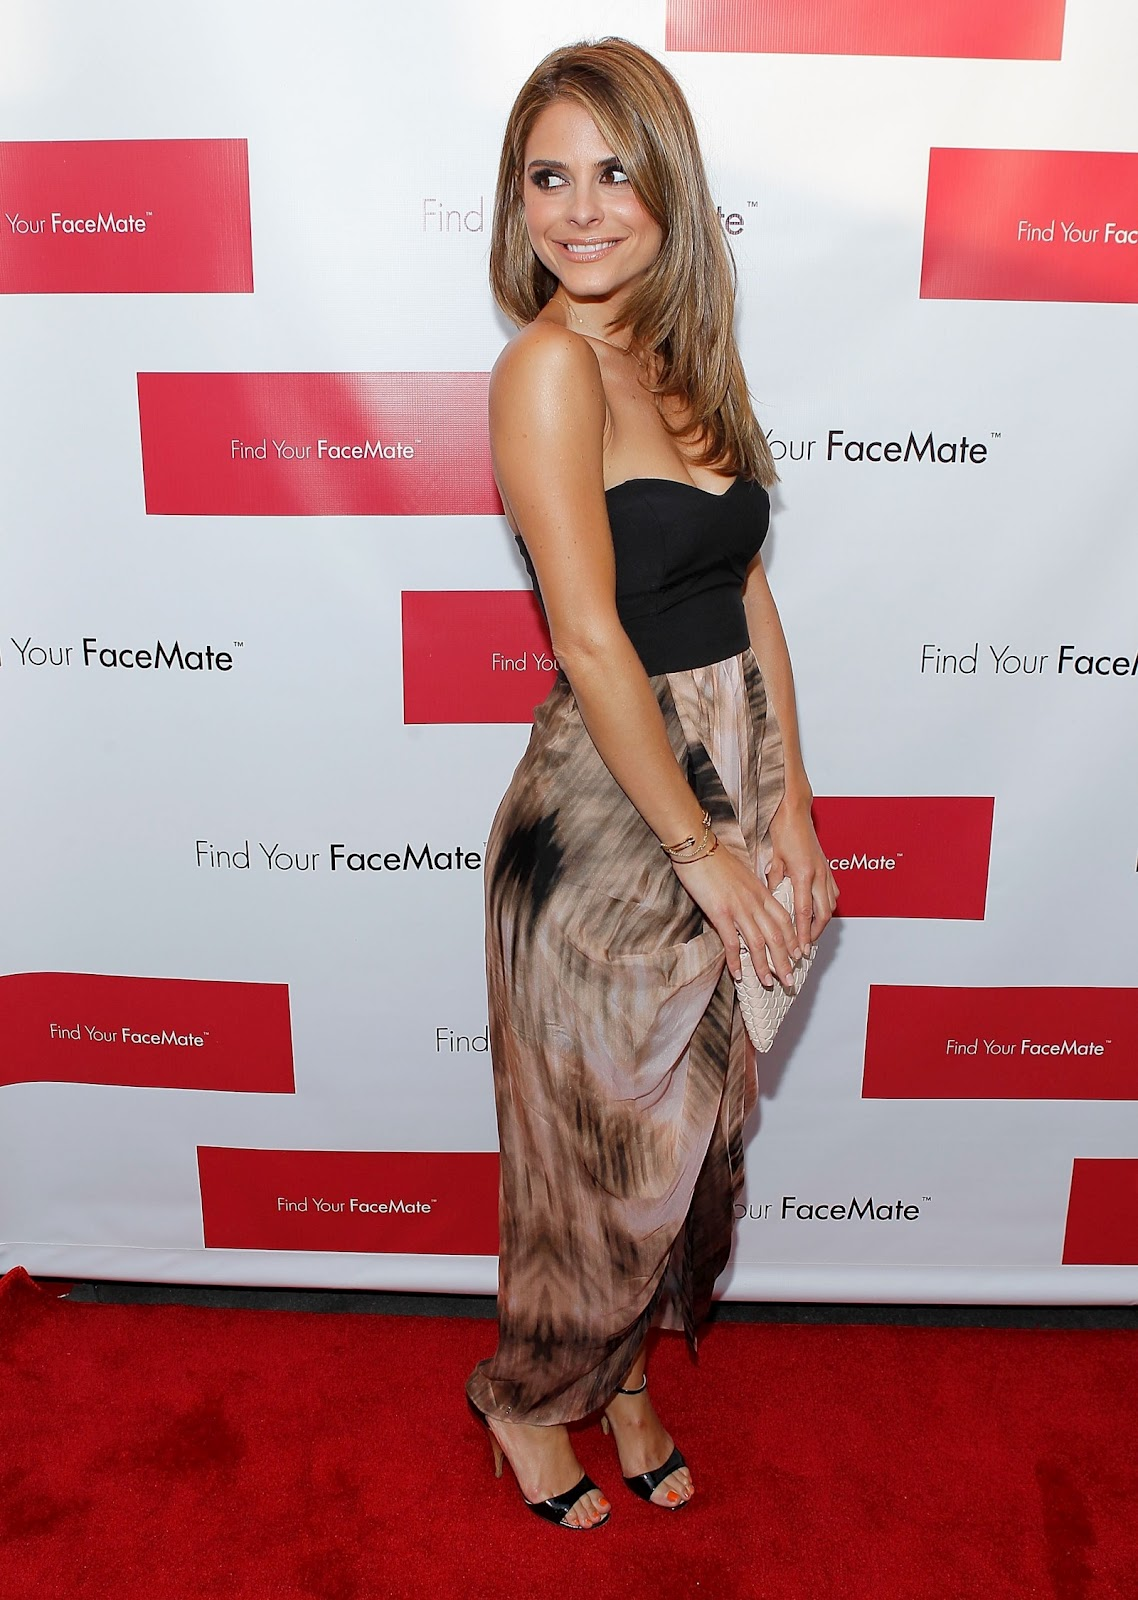 http://4.bp.blogspot.com/-zLqFrAZG8Fc/T_6s-hBAr8I/AAAAAAAAMLA/KmbLA3Miwyc/s1600/Maria+Menounos+Cleavage+-+Find+Your+Facemate+Launch+Event+in+New+York+07.jpg